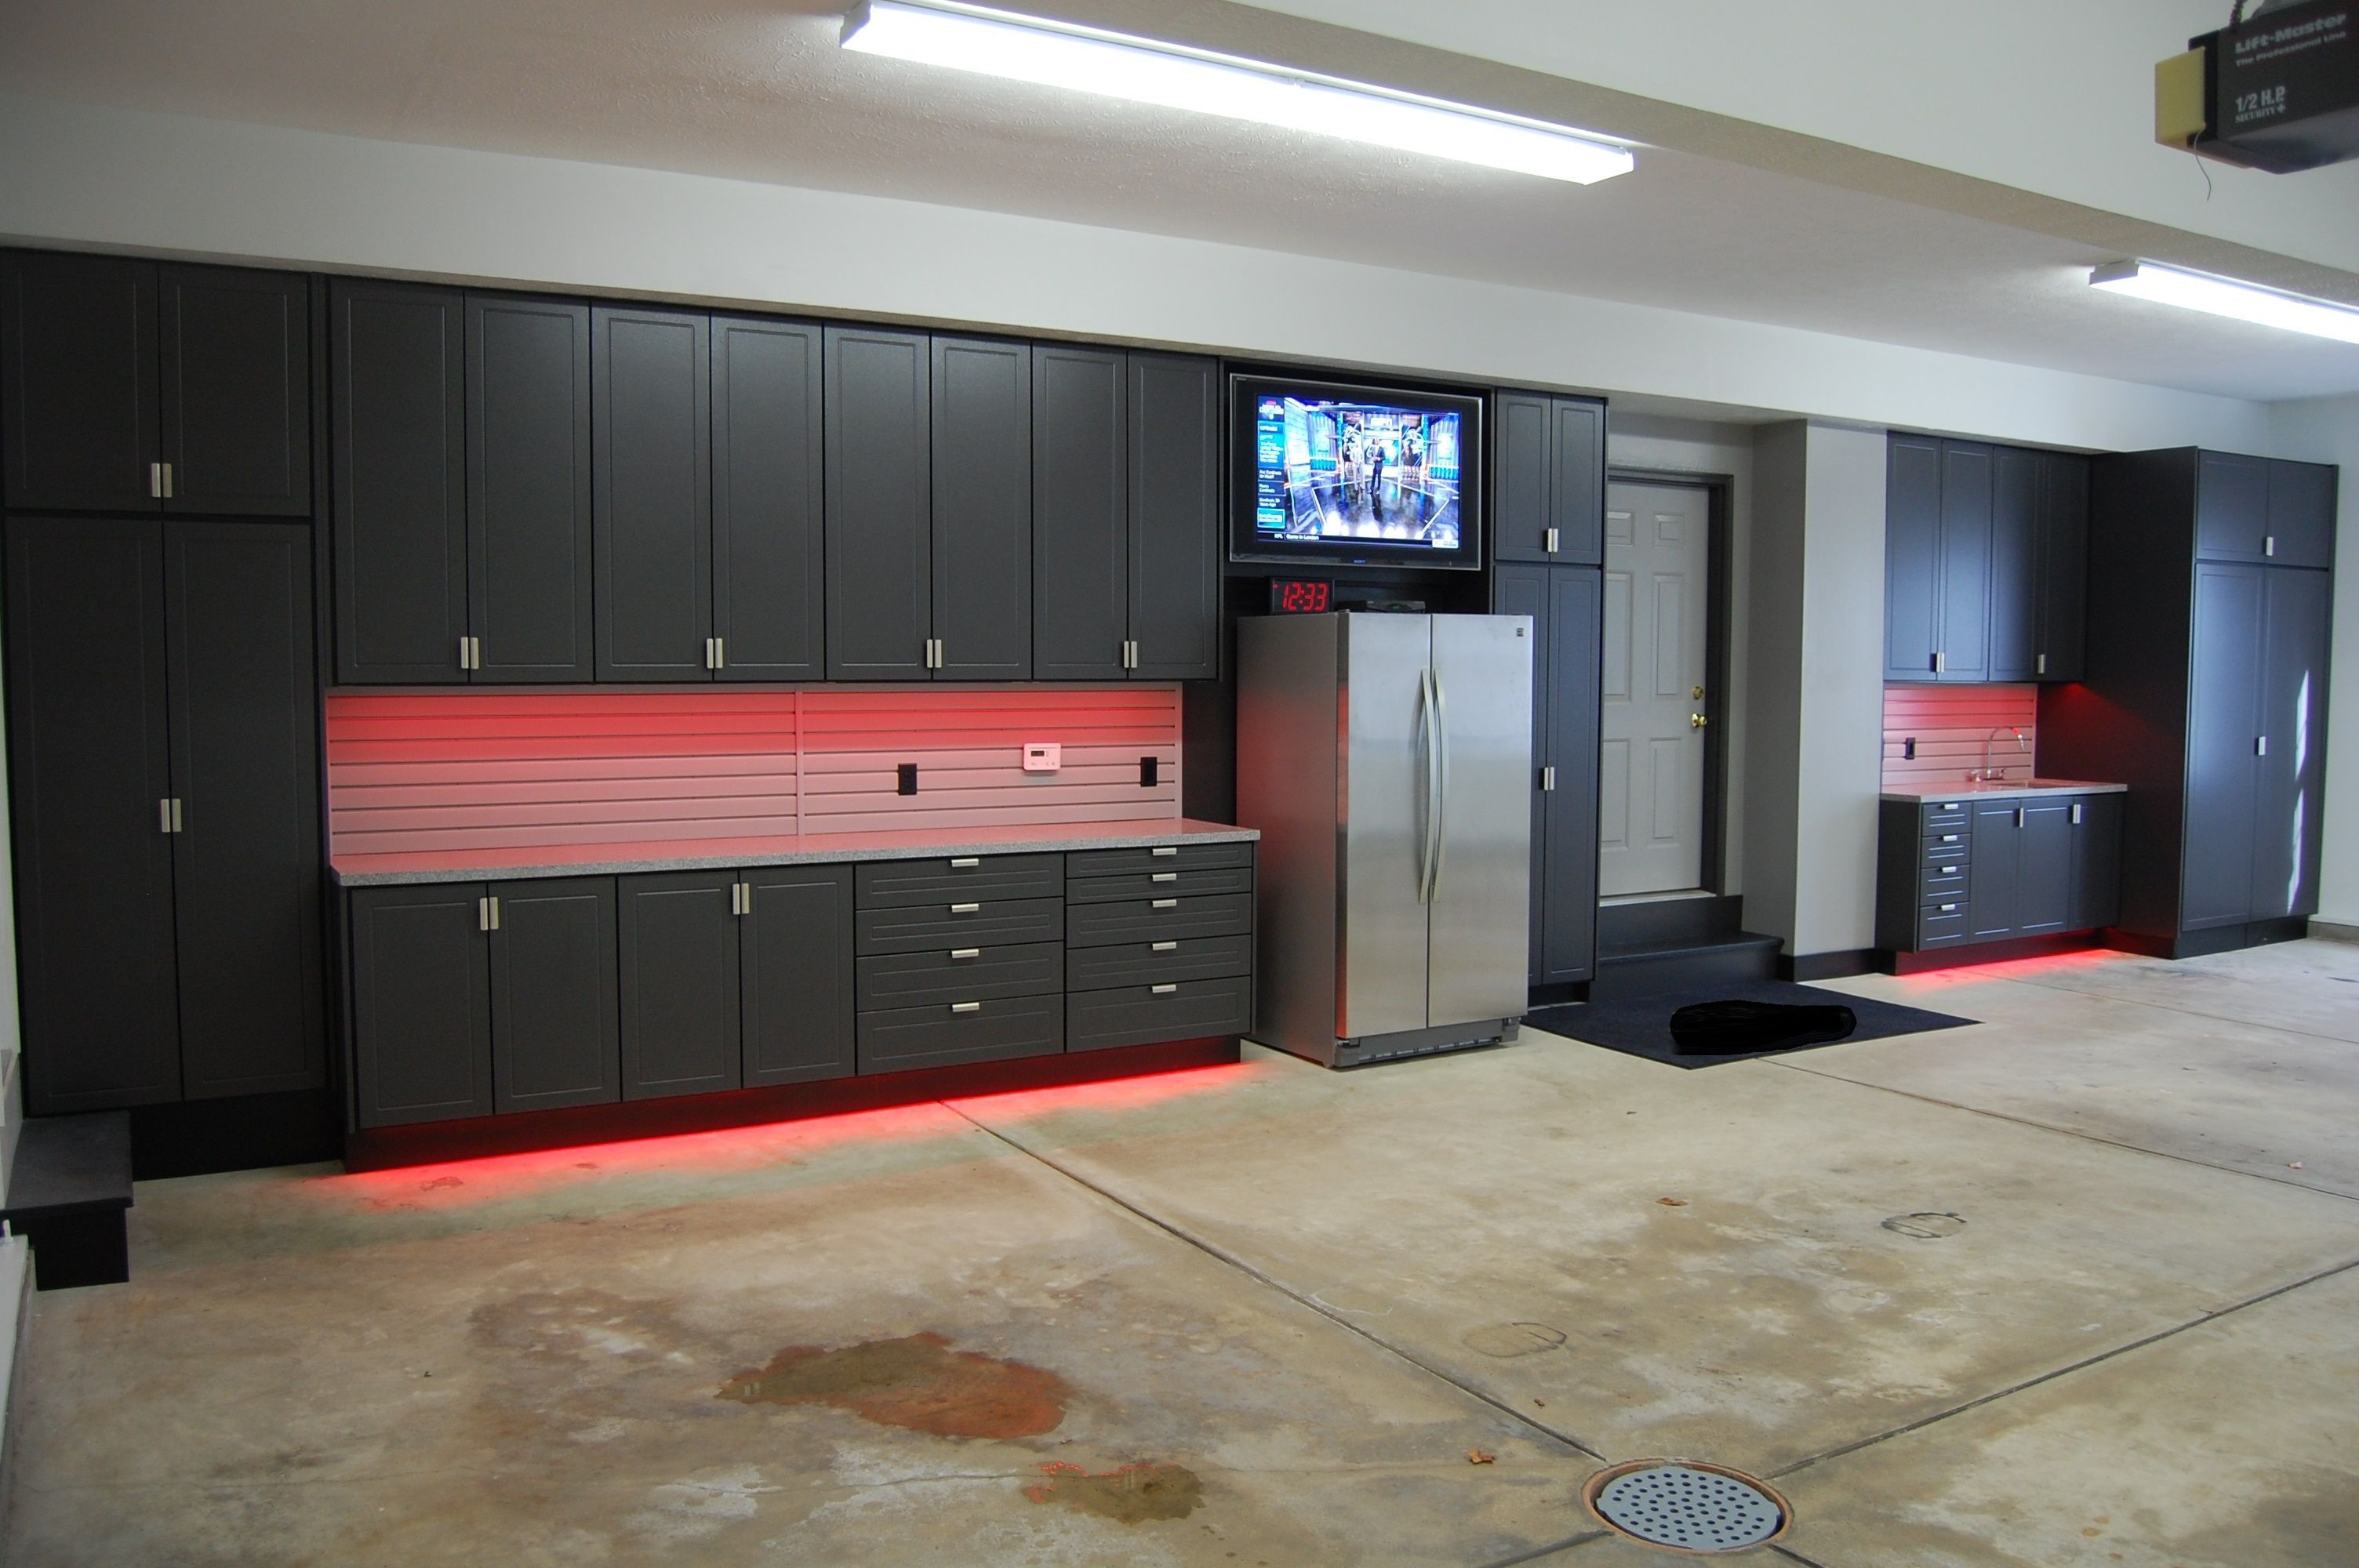 Garage Cabinets And Storage Systems Although The Floor Could Use